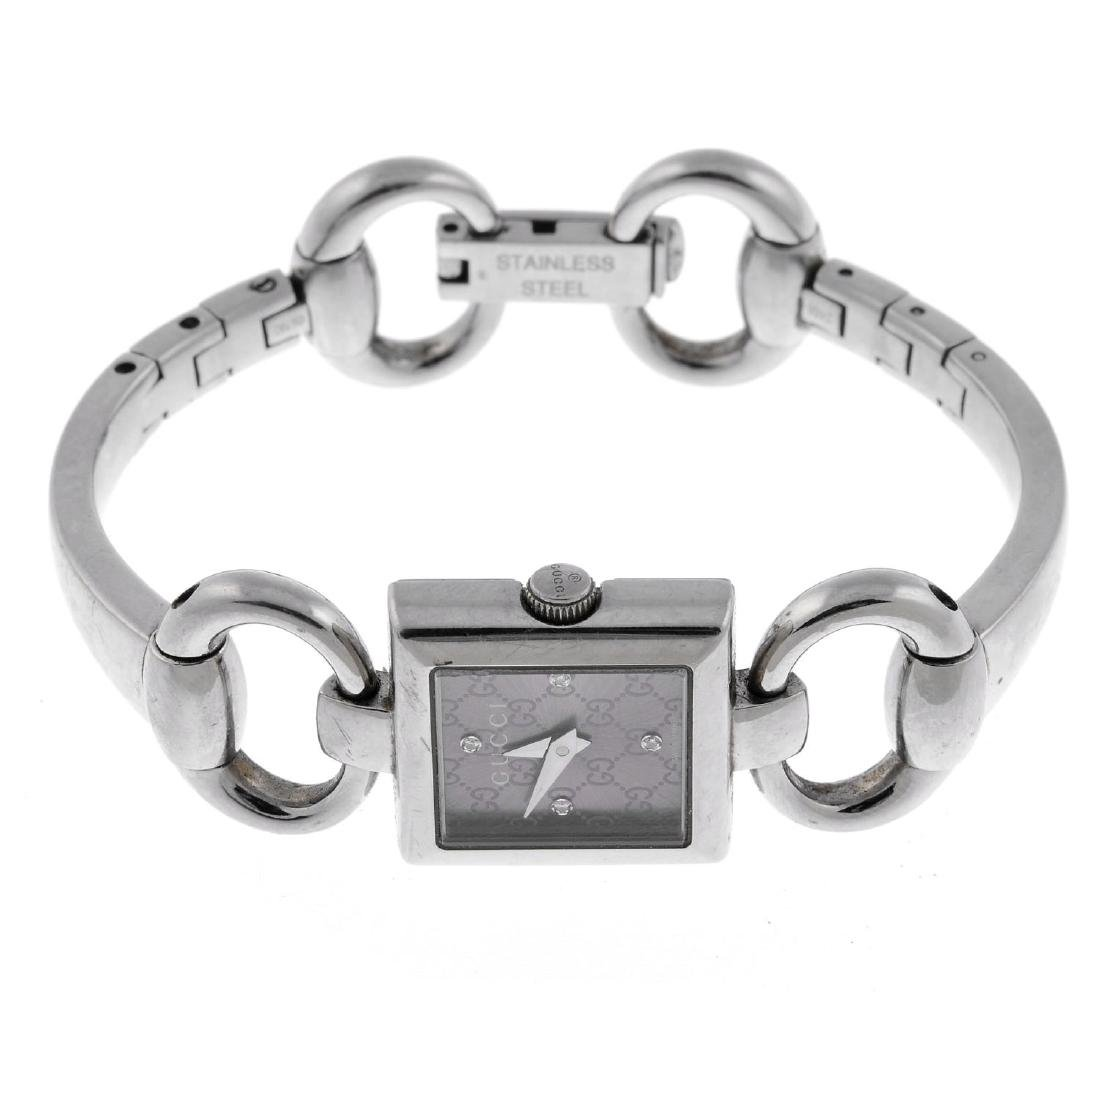 GUCCI - a lady's Tornabuoni bracelet watch. Stainless